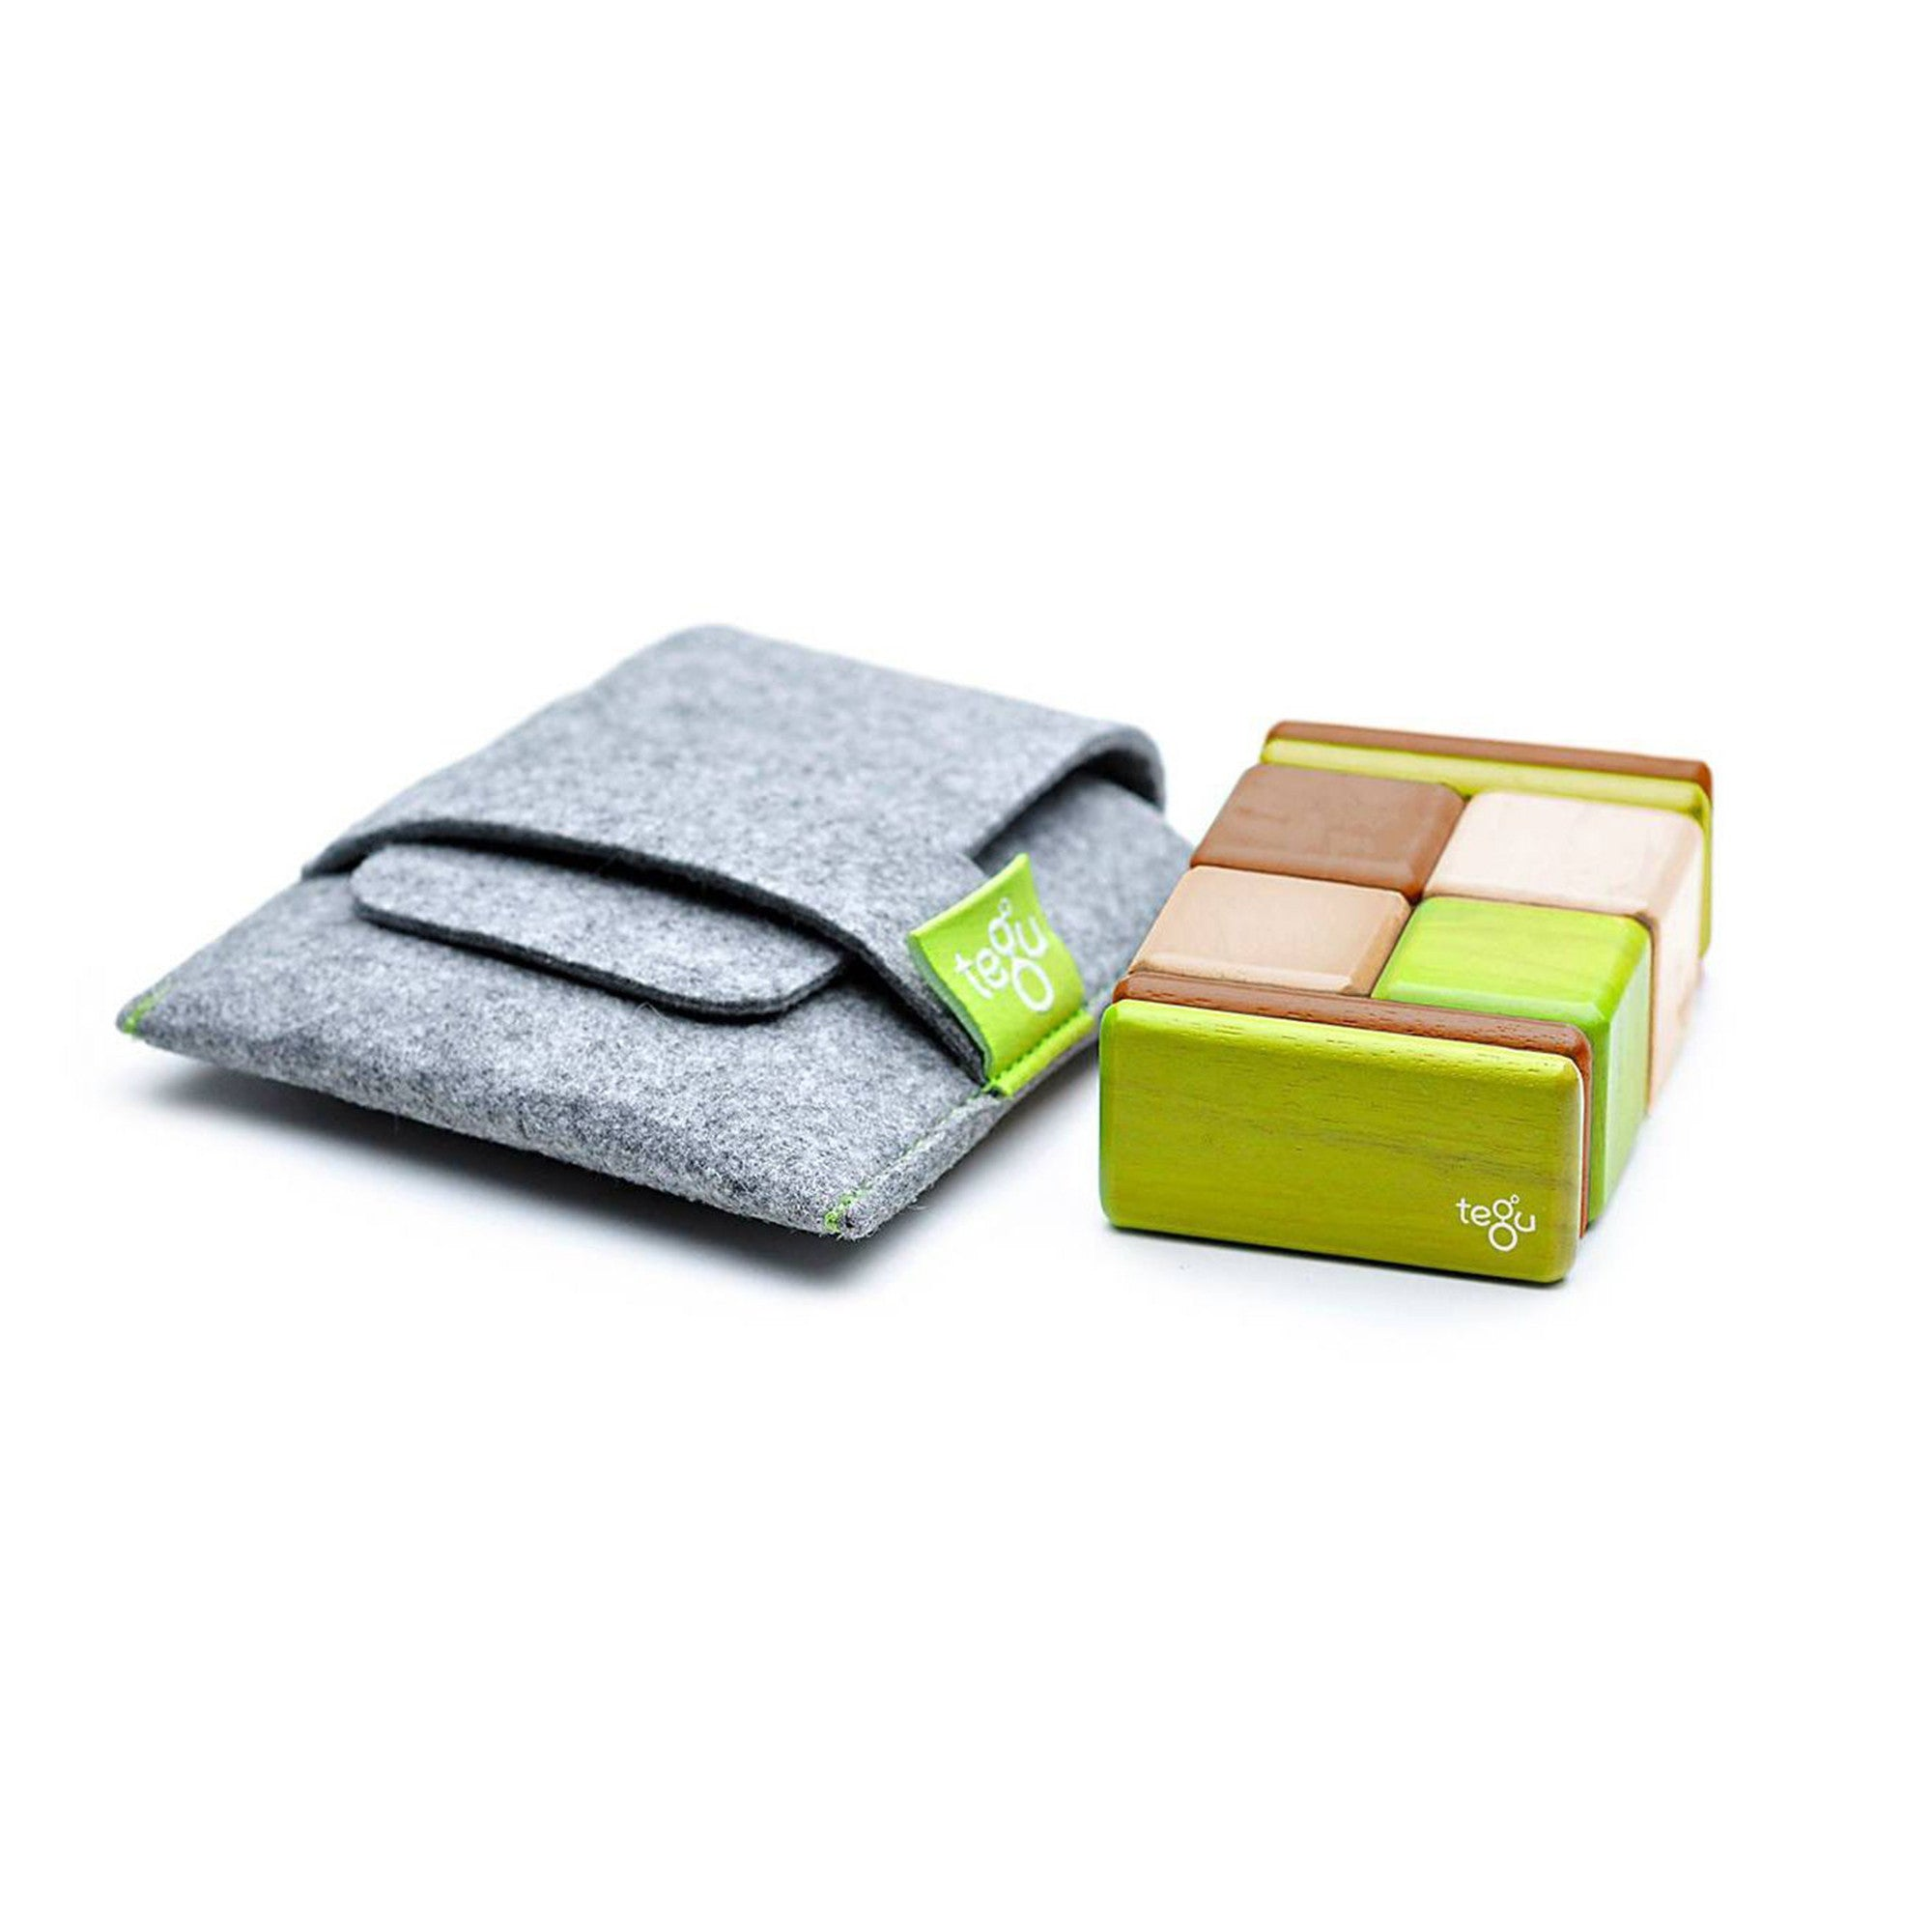 Tegu Pocket Pouch 8 Piece Magnetic Block Set   - Tegu - Little Earth Nest - 1